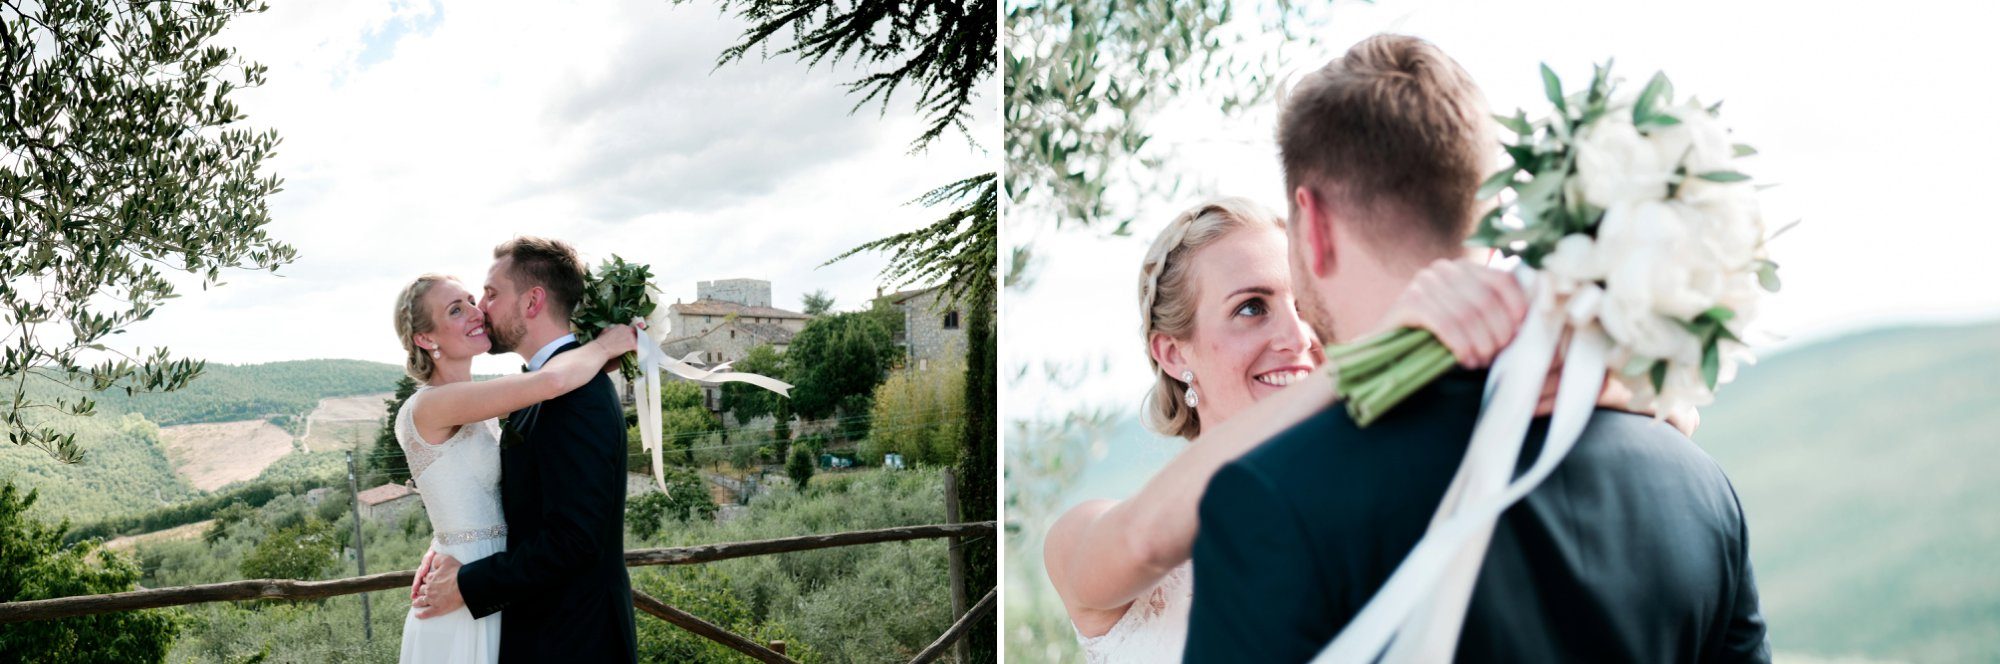 intimate-wedding-in-chianti